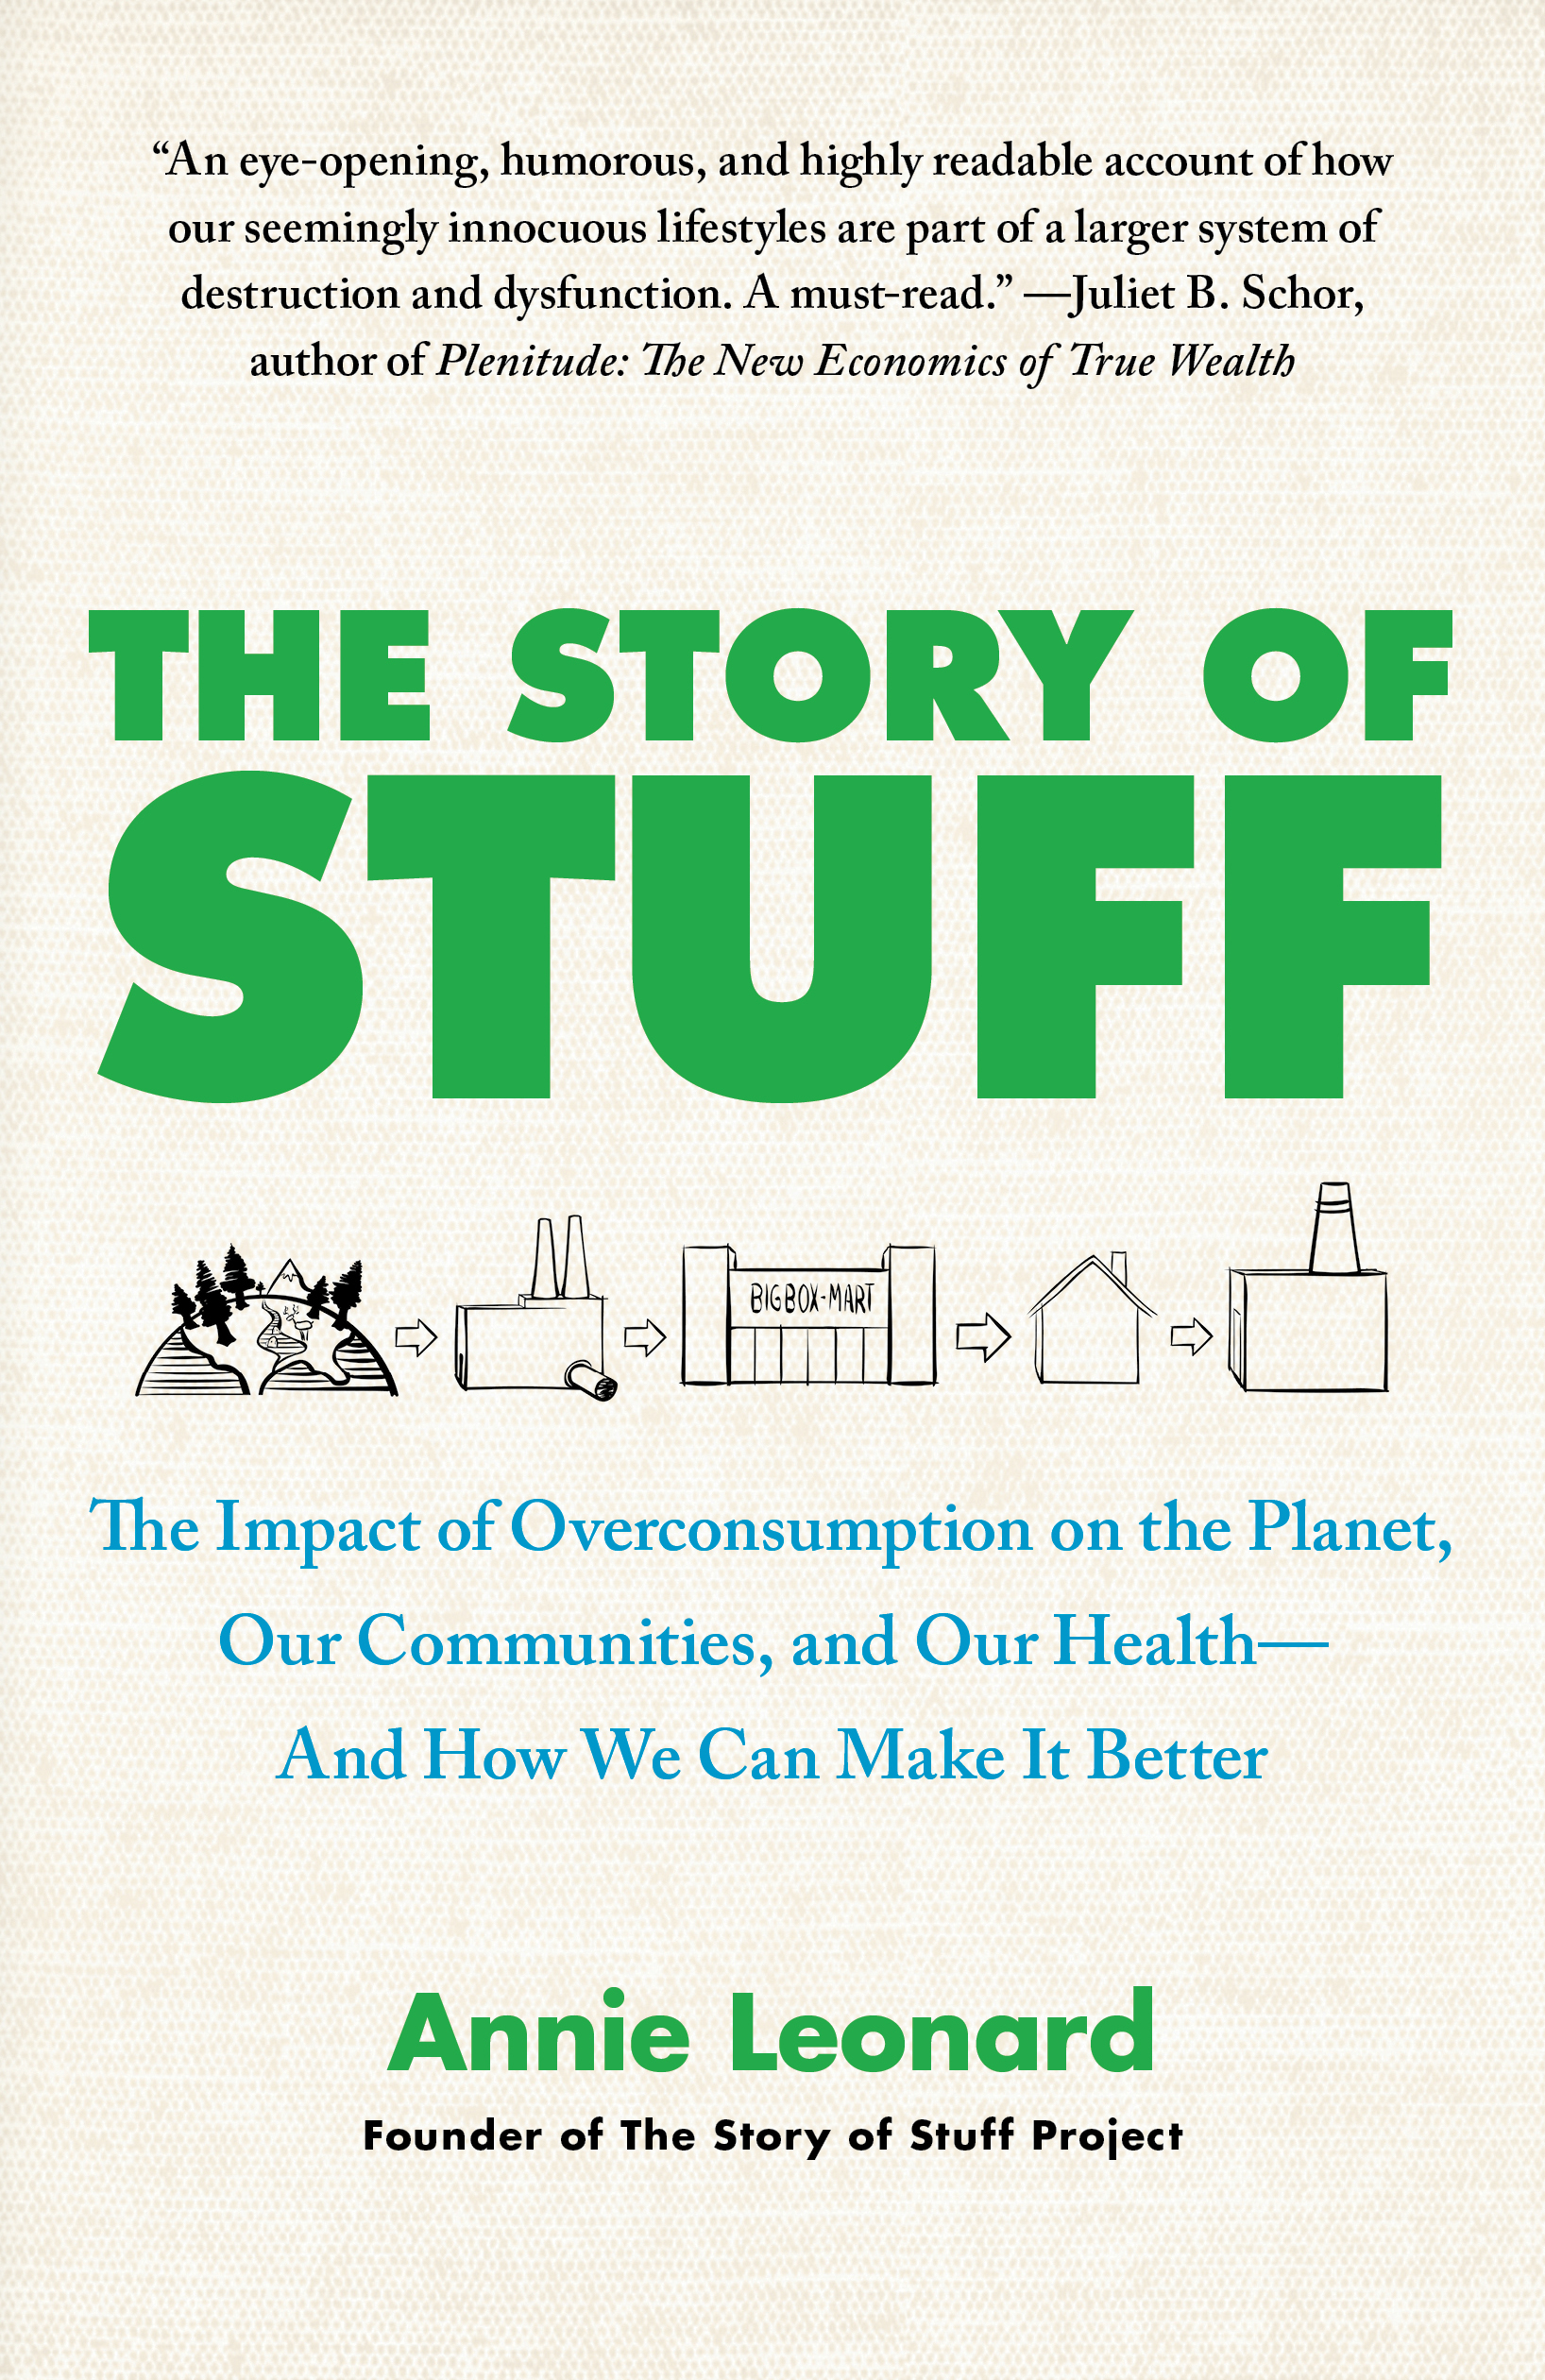 Book Cover Image (jpg): The Story of Stuff